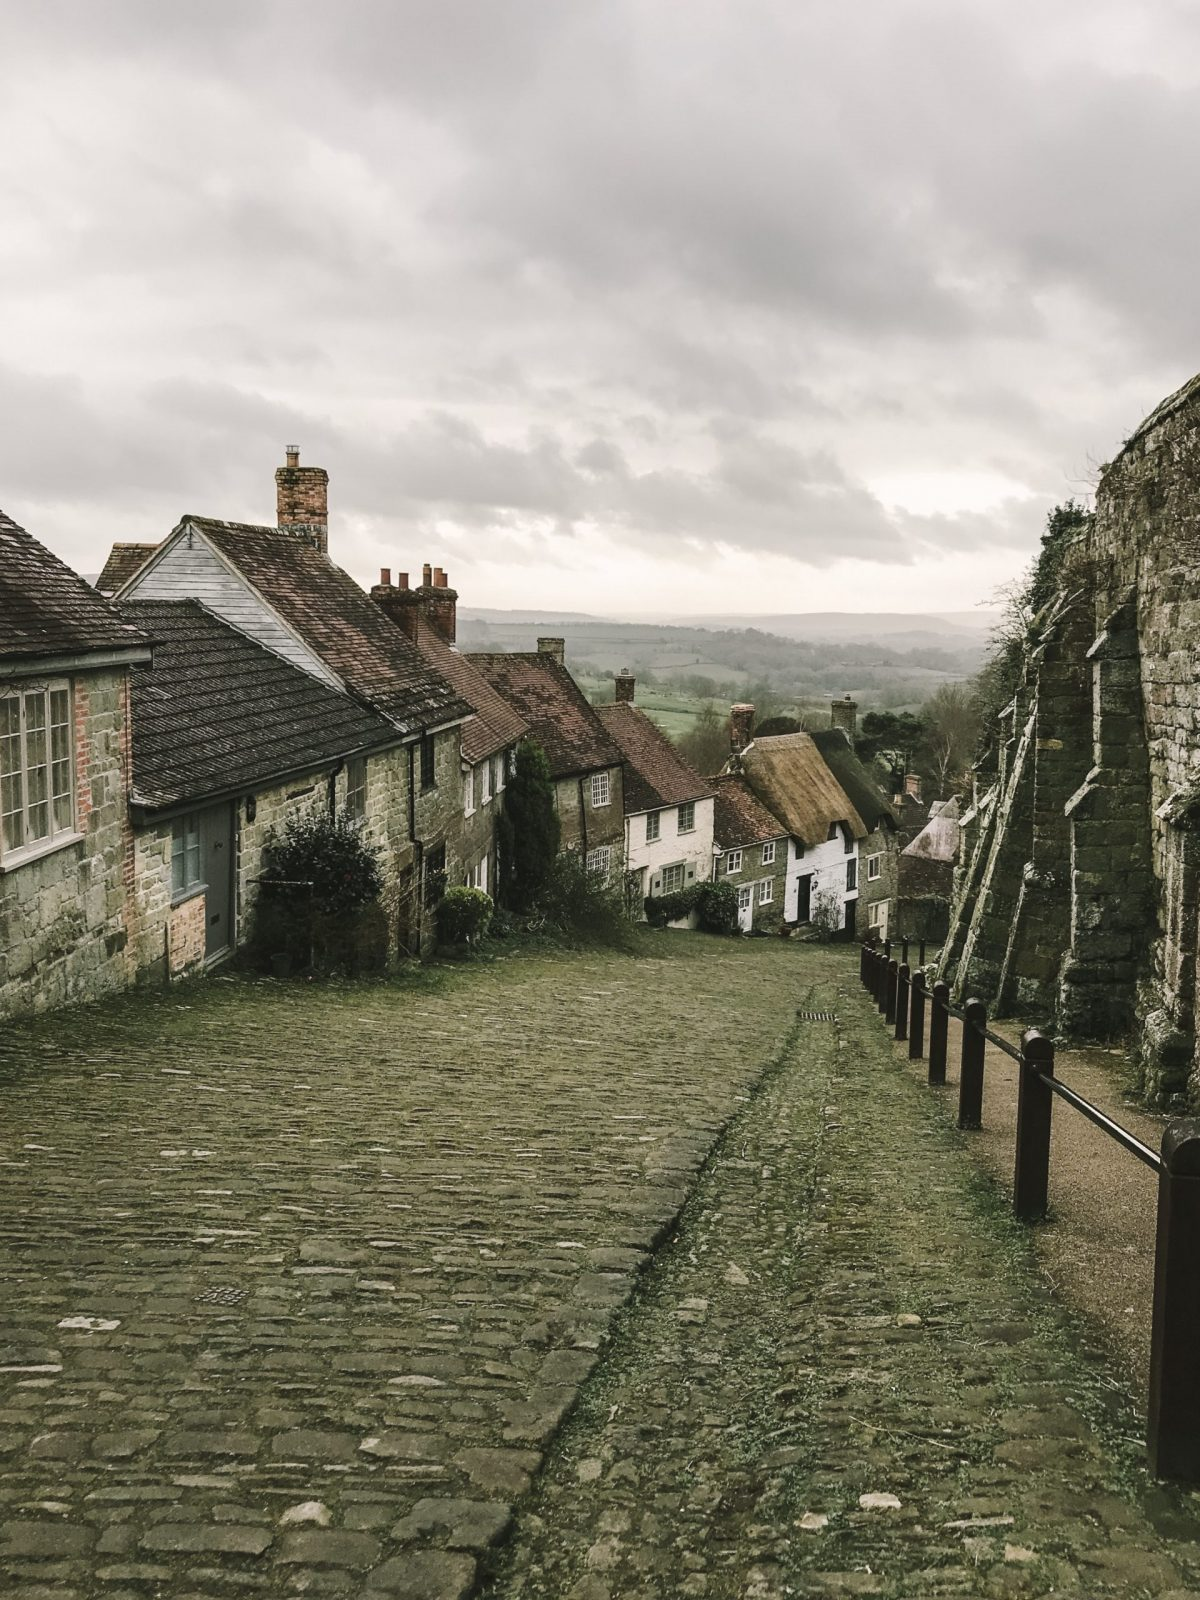 Best villages in Dorset 10 Prettiest locations